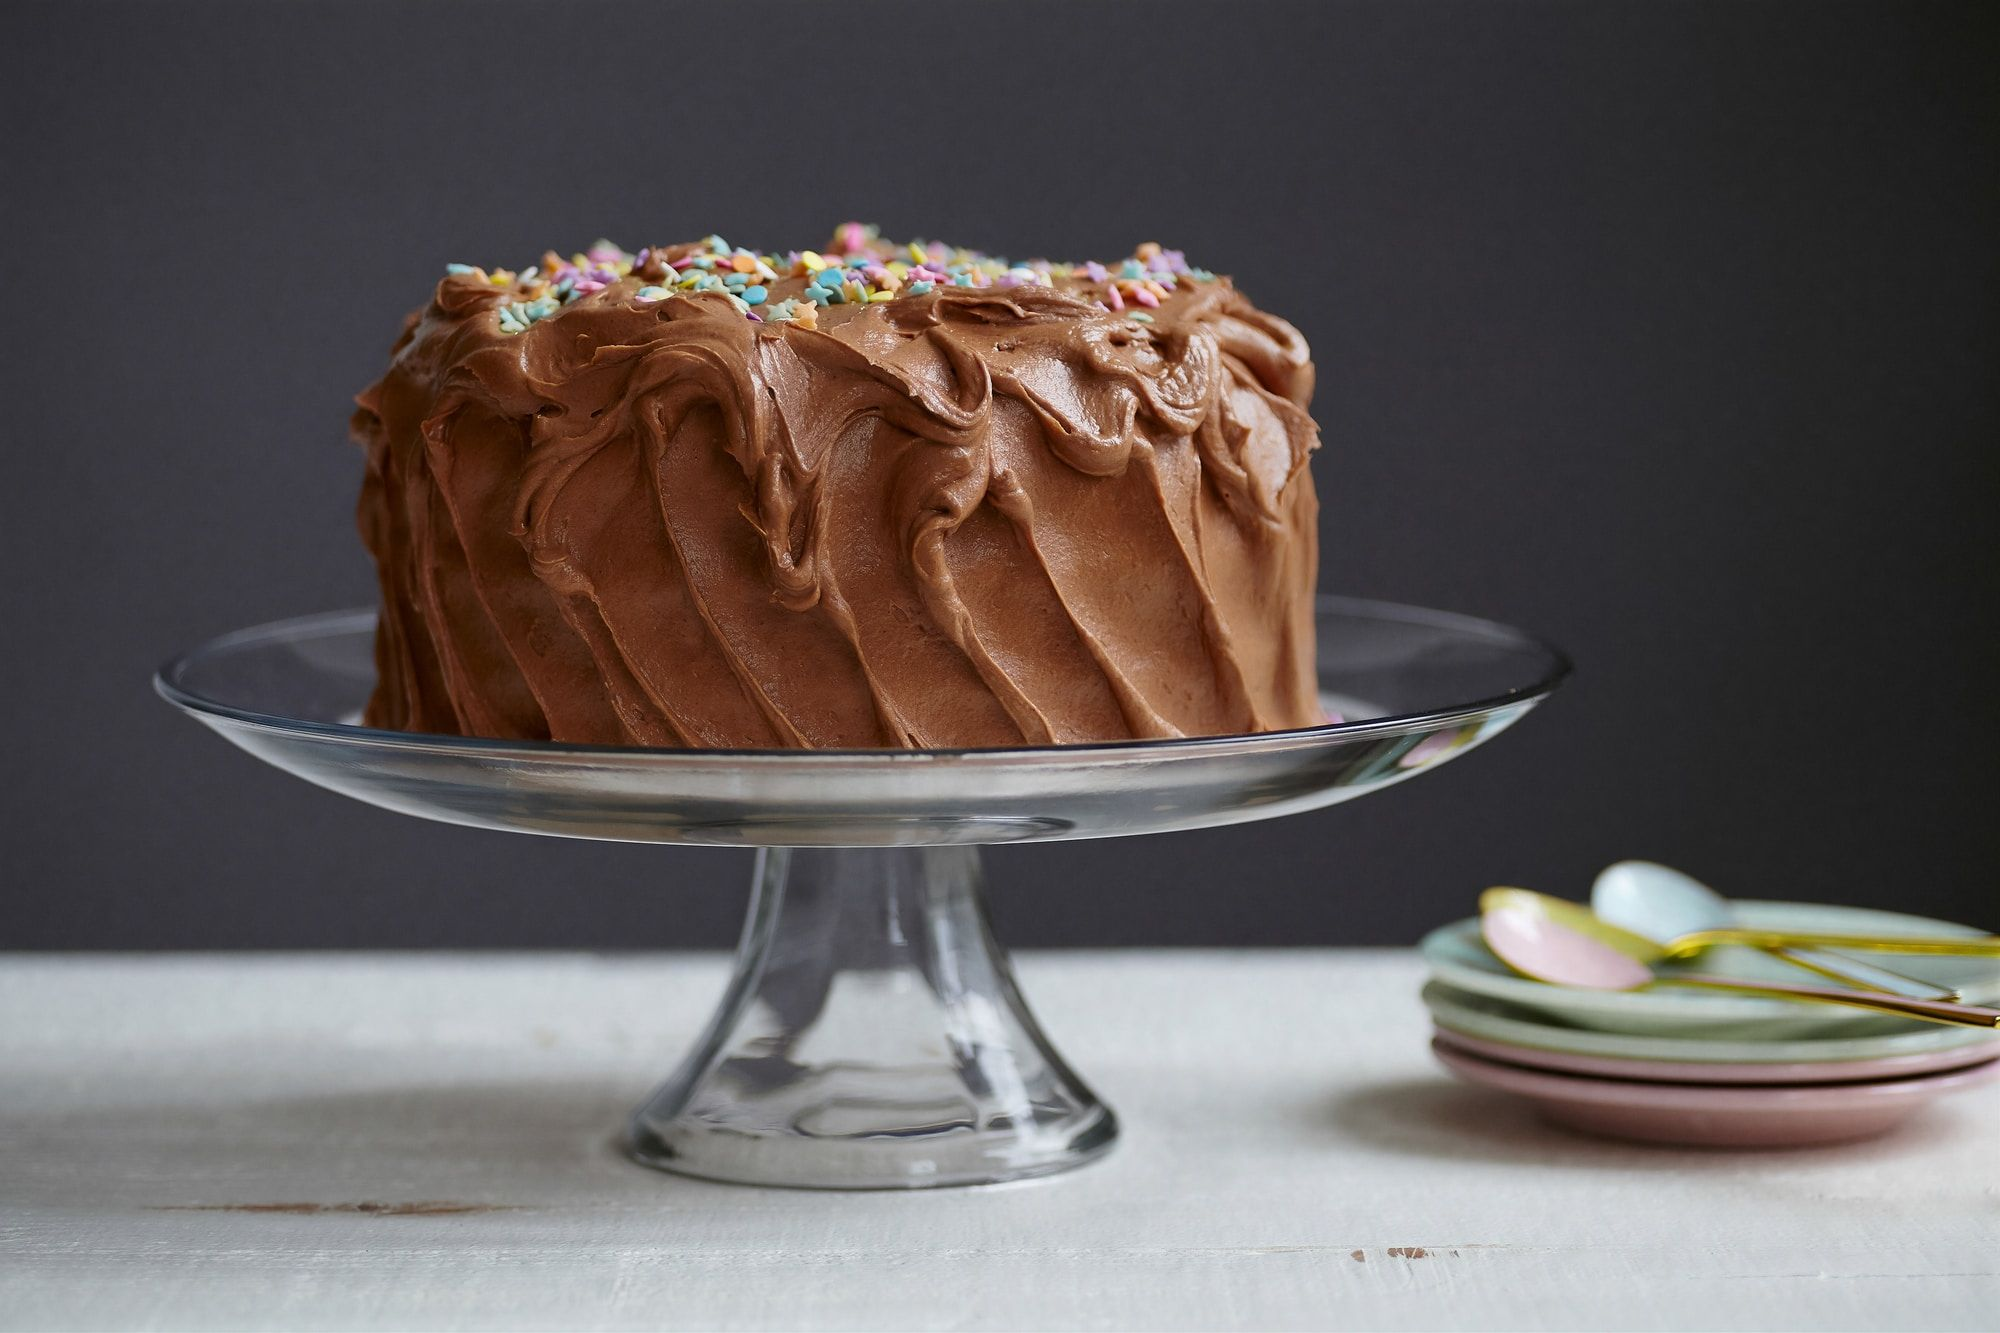 An indulgent chocolate cake situated on a glass stand